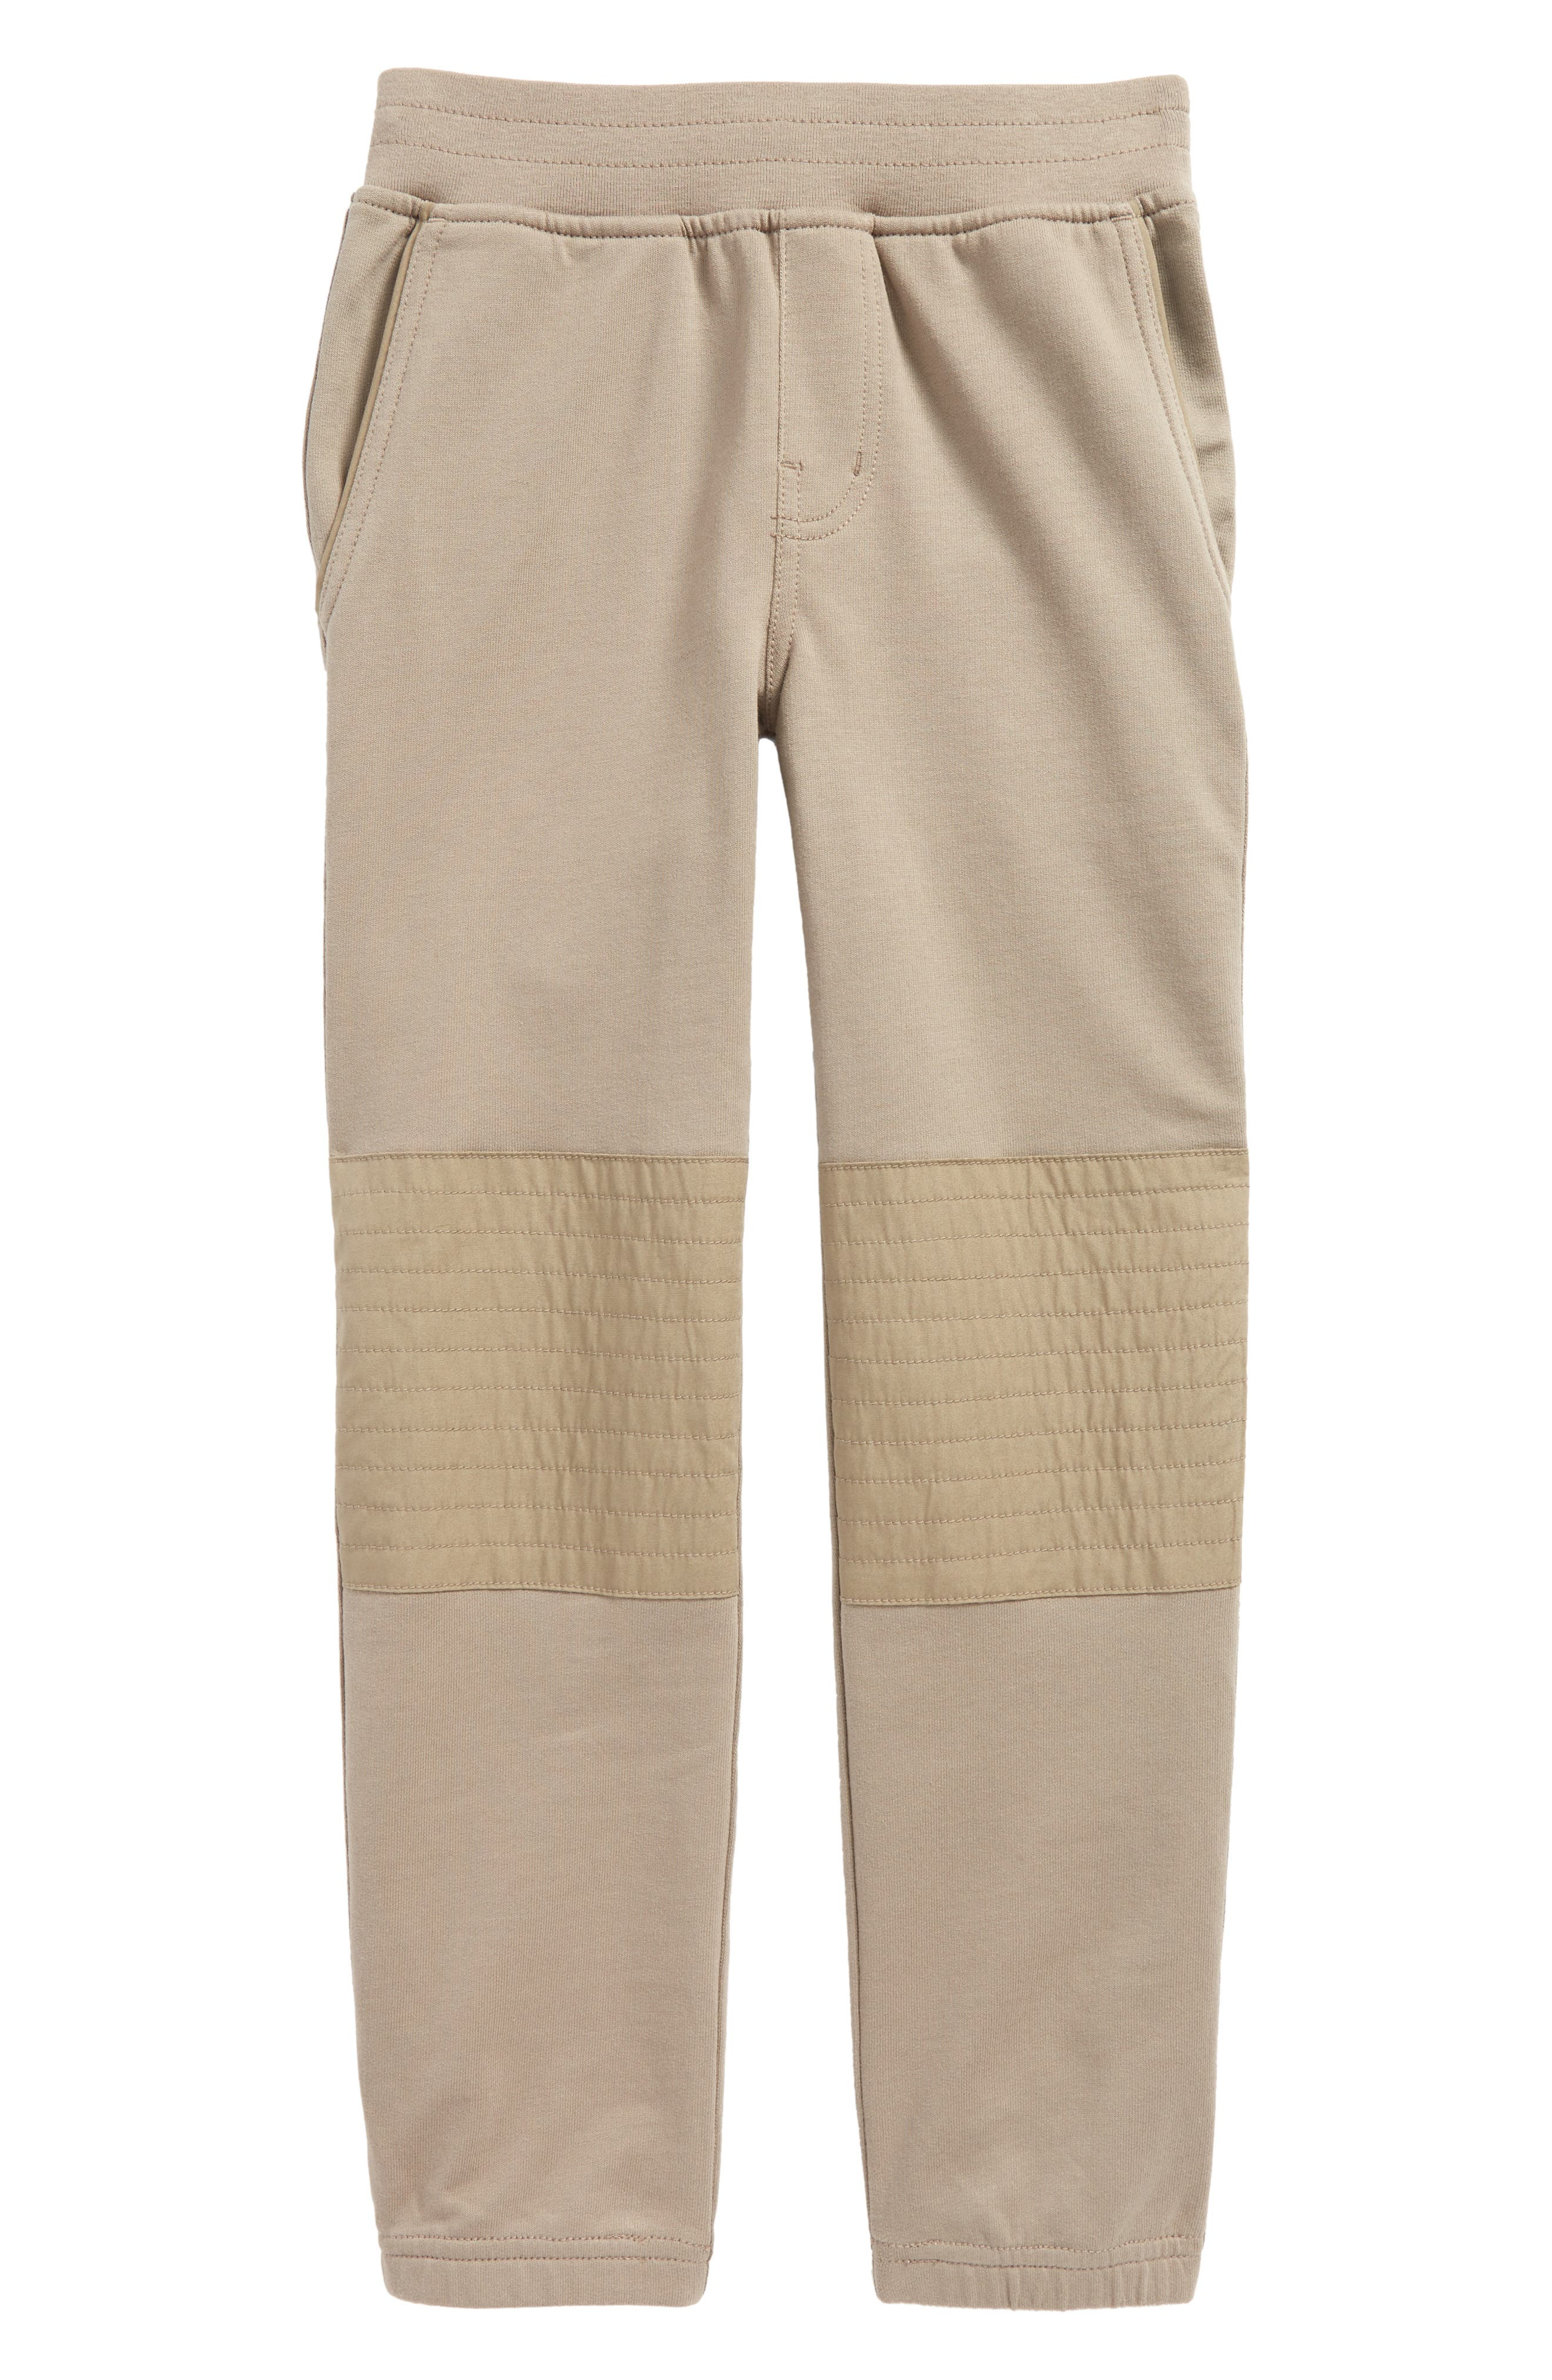 French Terry Moto Pants,                         Main,                         color, 268